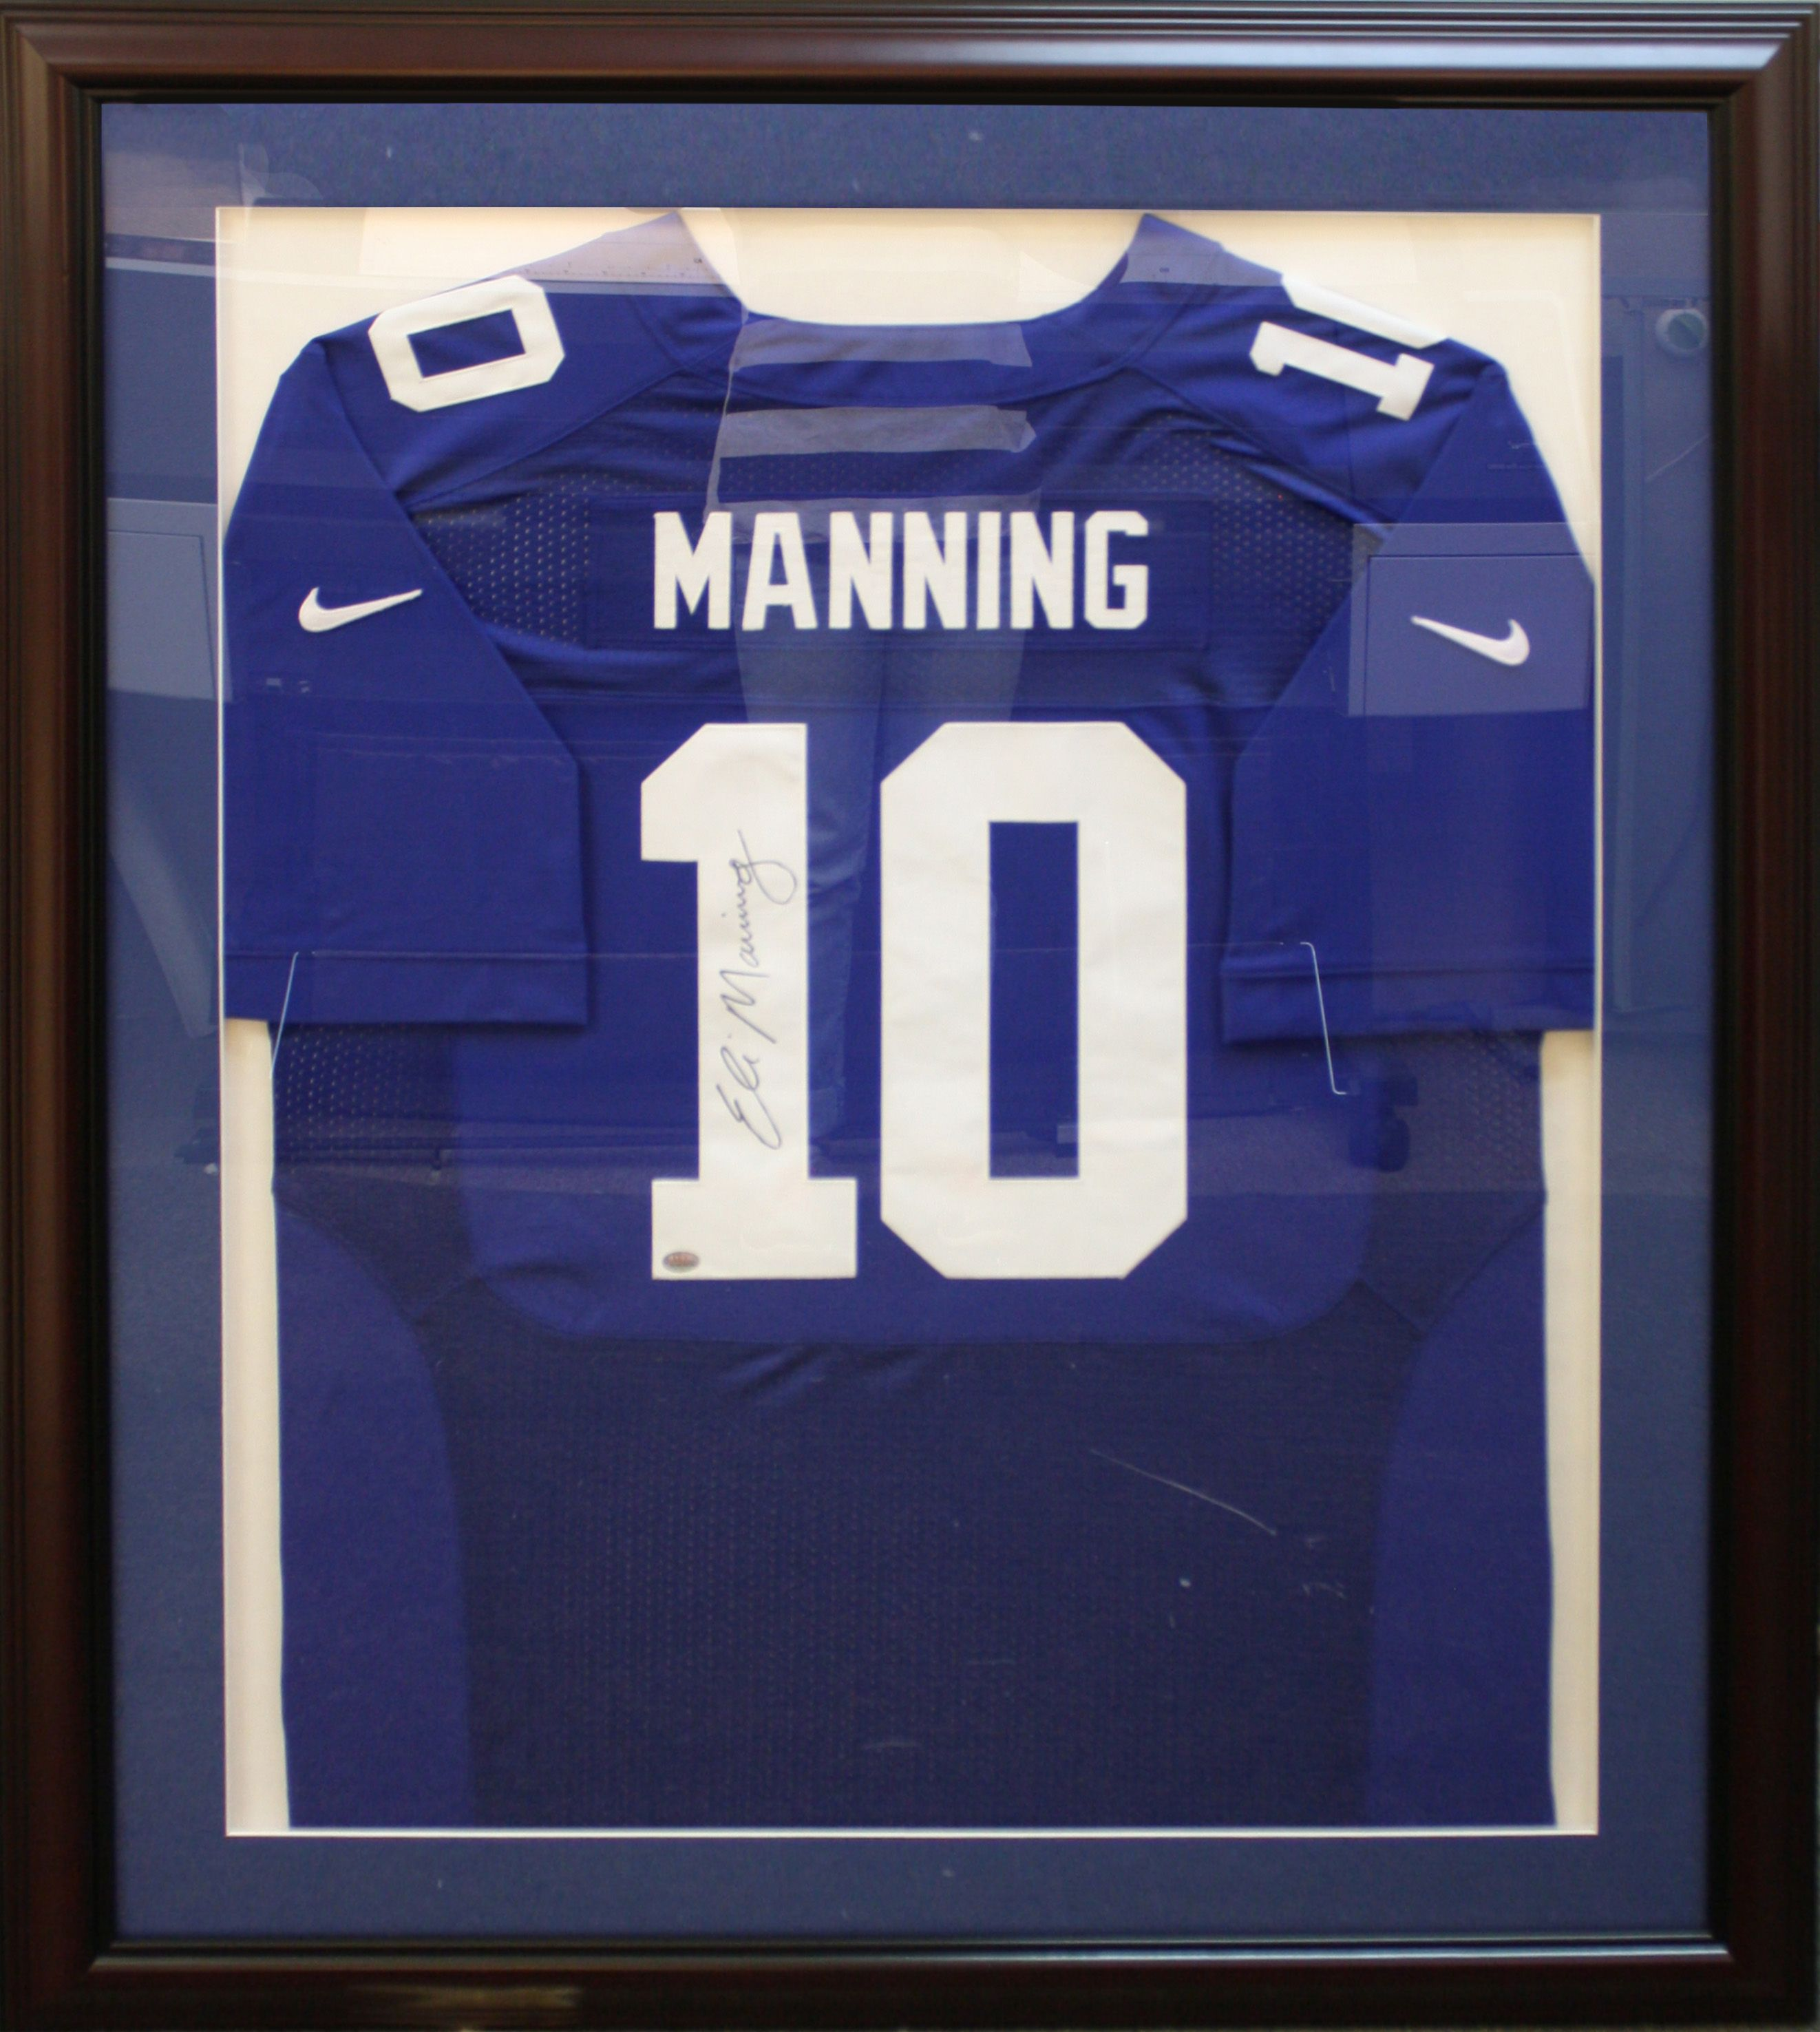 NY Giants NFL Eli Manning Jersey custom framed by Art and Frame Express in  Edison NJ  Football JerseysNfl